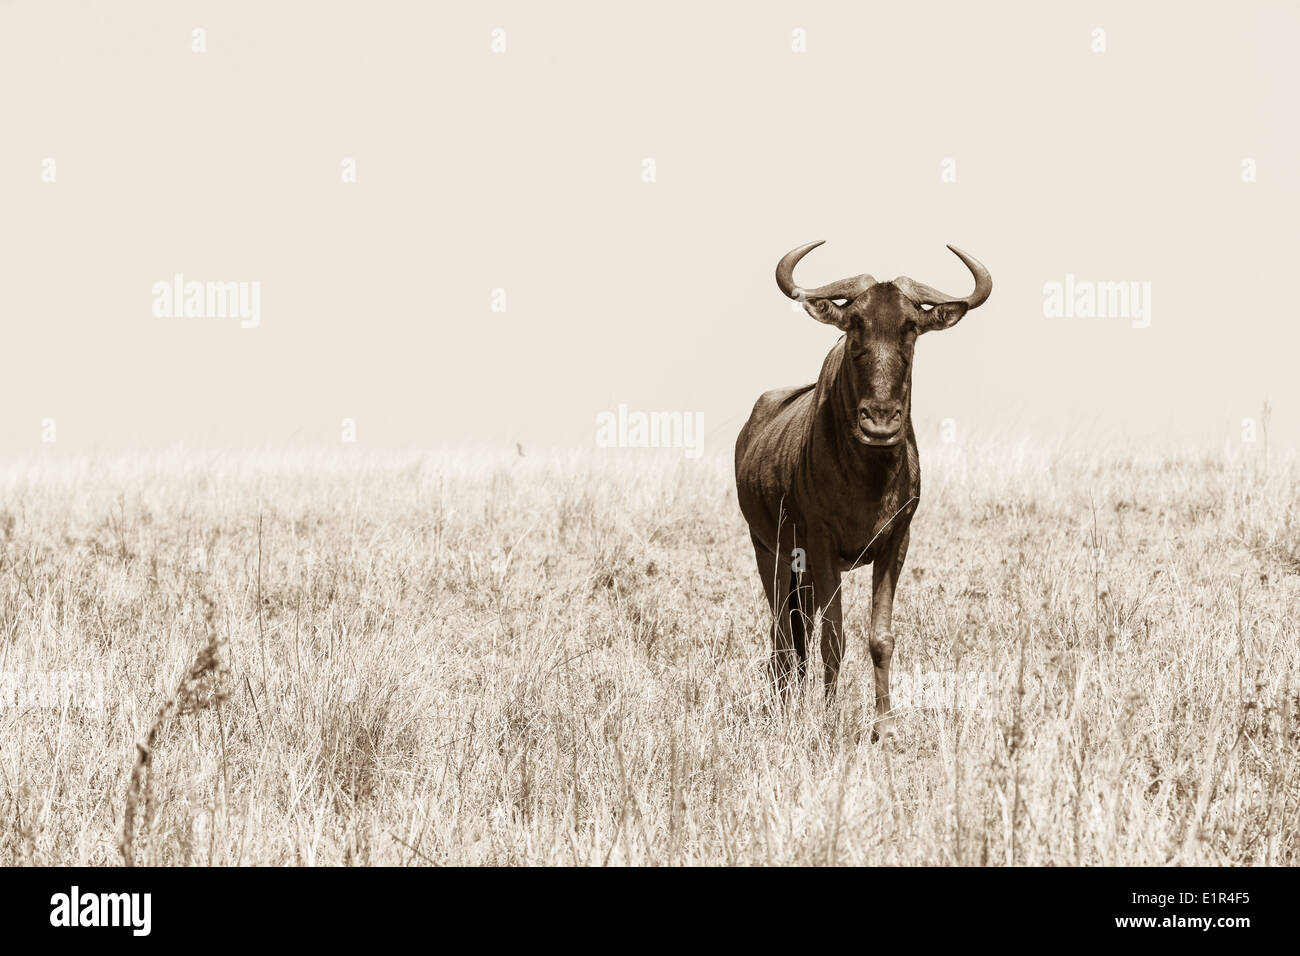 Bull Wildebeest bull wildlife animal alone  plateau in sepia tone vintage photo - Stock Image